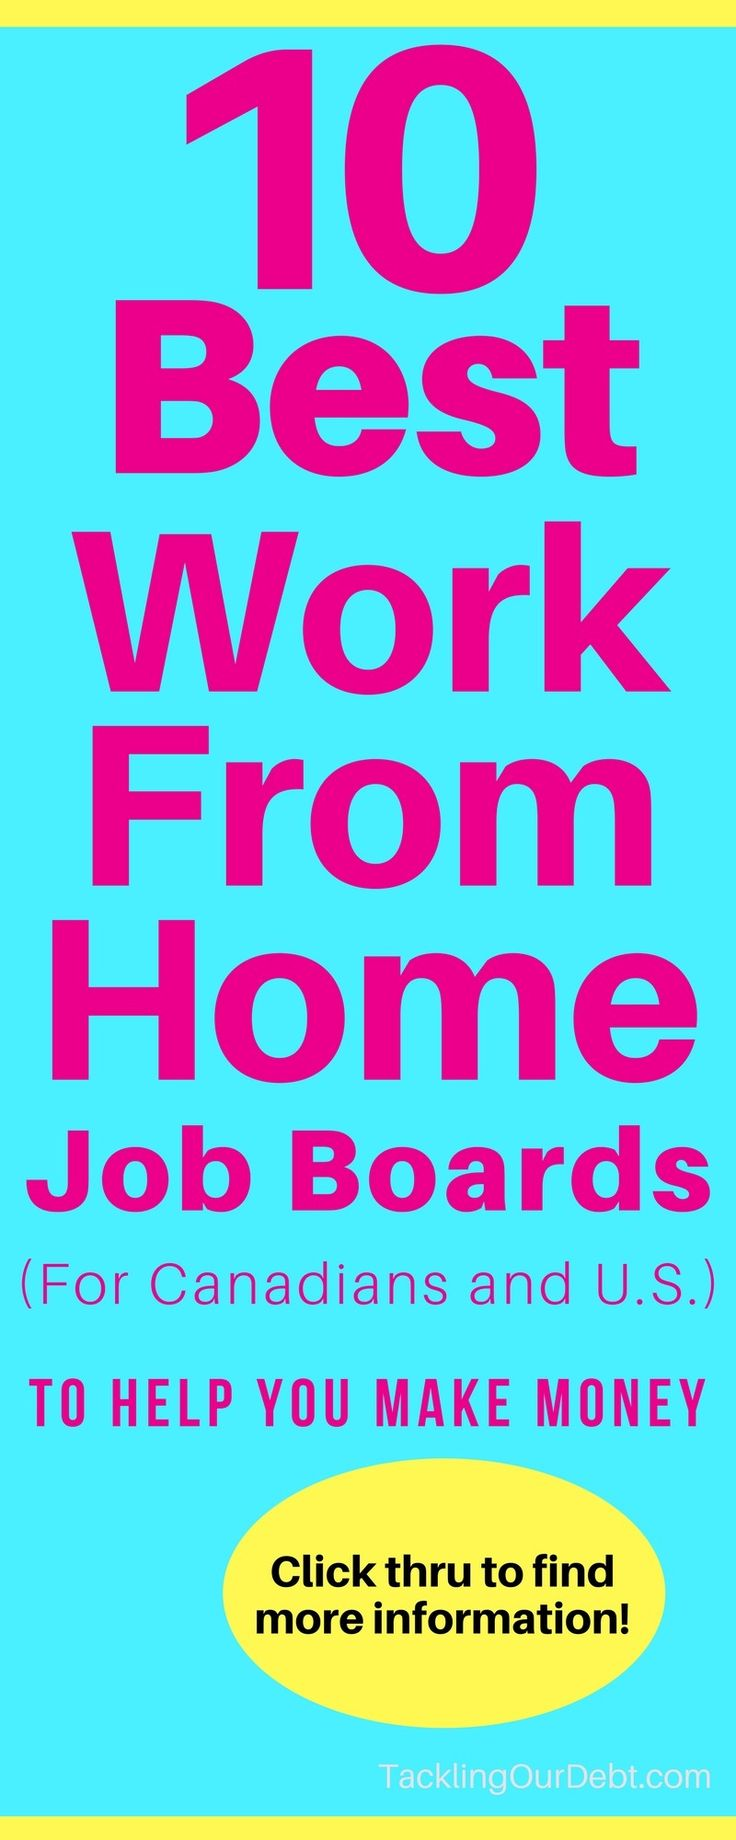 Need to find a real work-from-home job? Here are the 10 Best Work From Home Job Boards on the Internet for both Canadians and US. Get started making money today. Click thru to learn more!